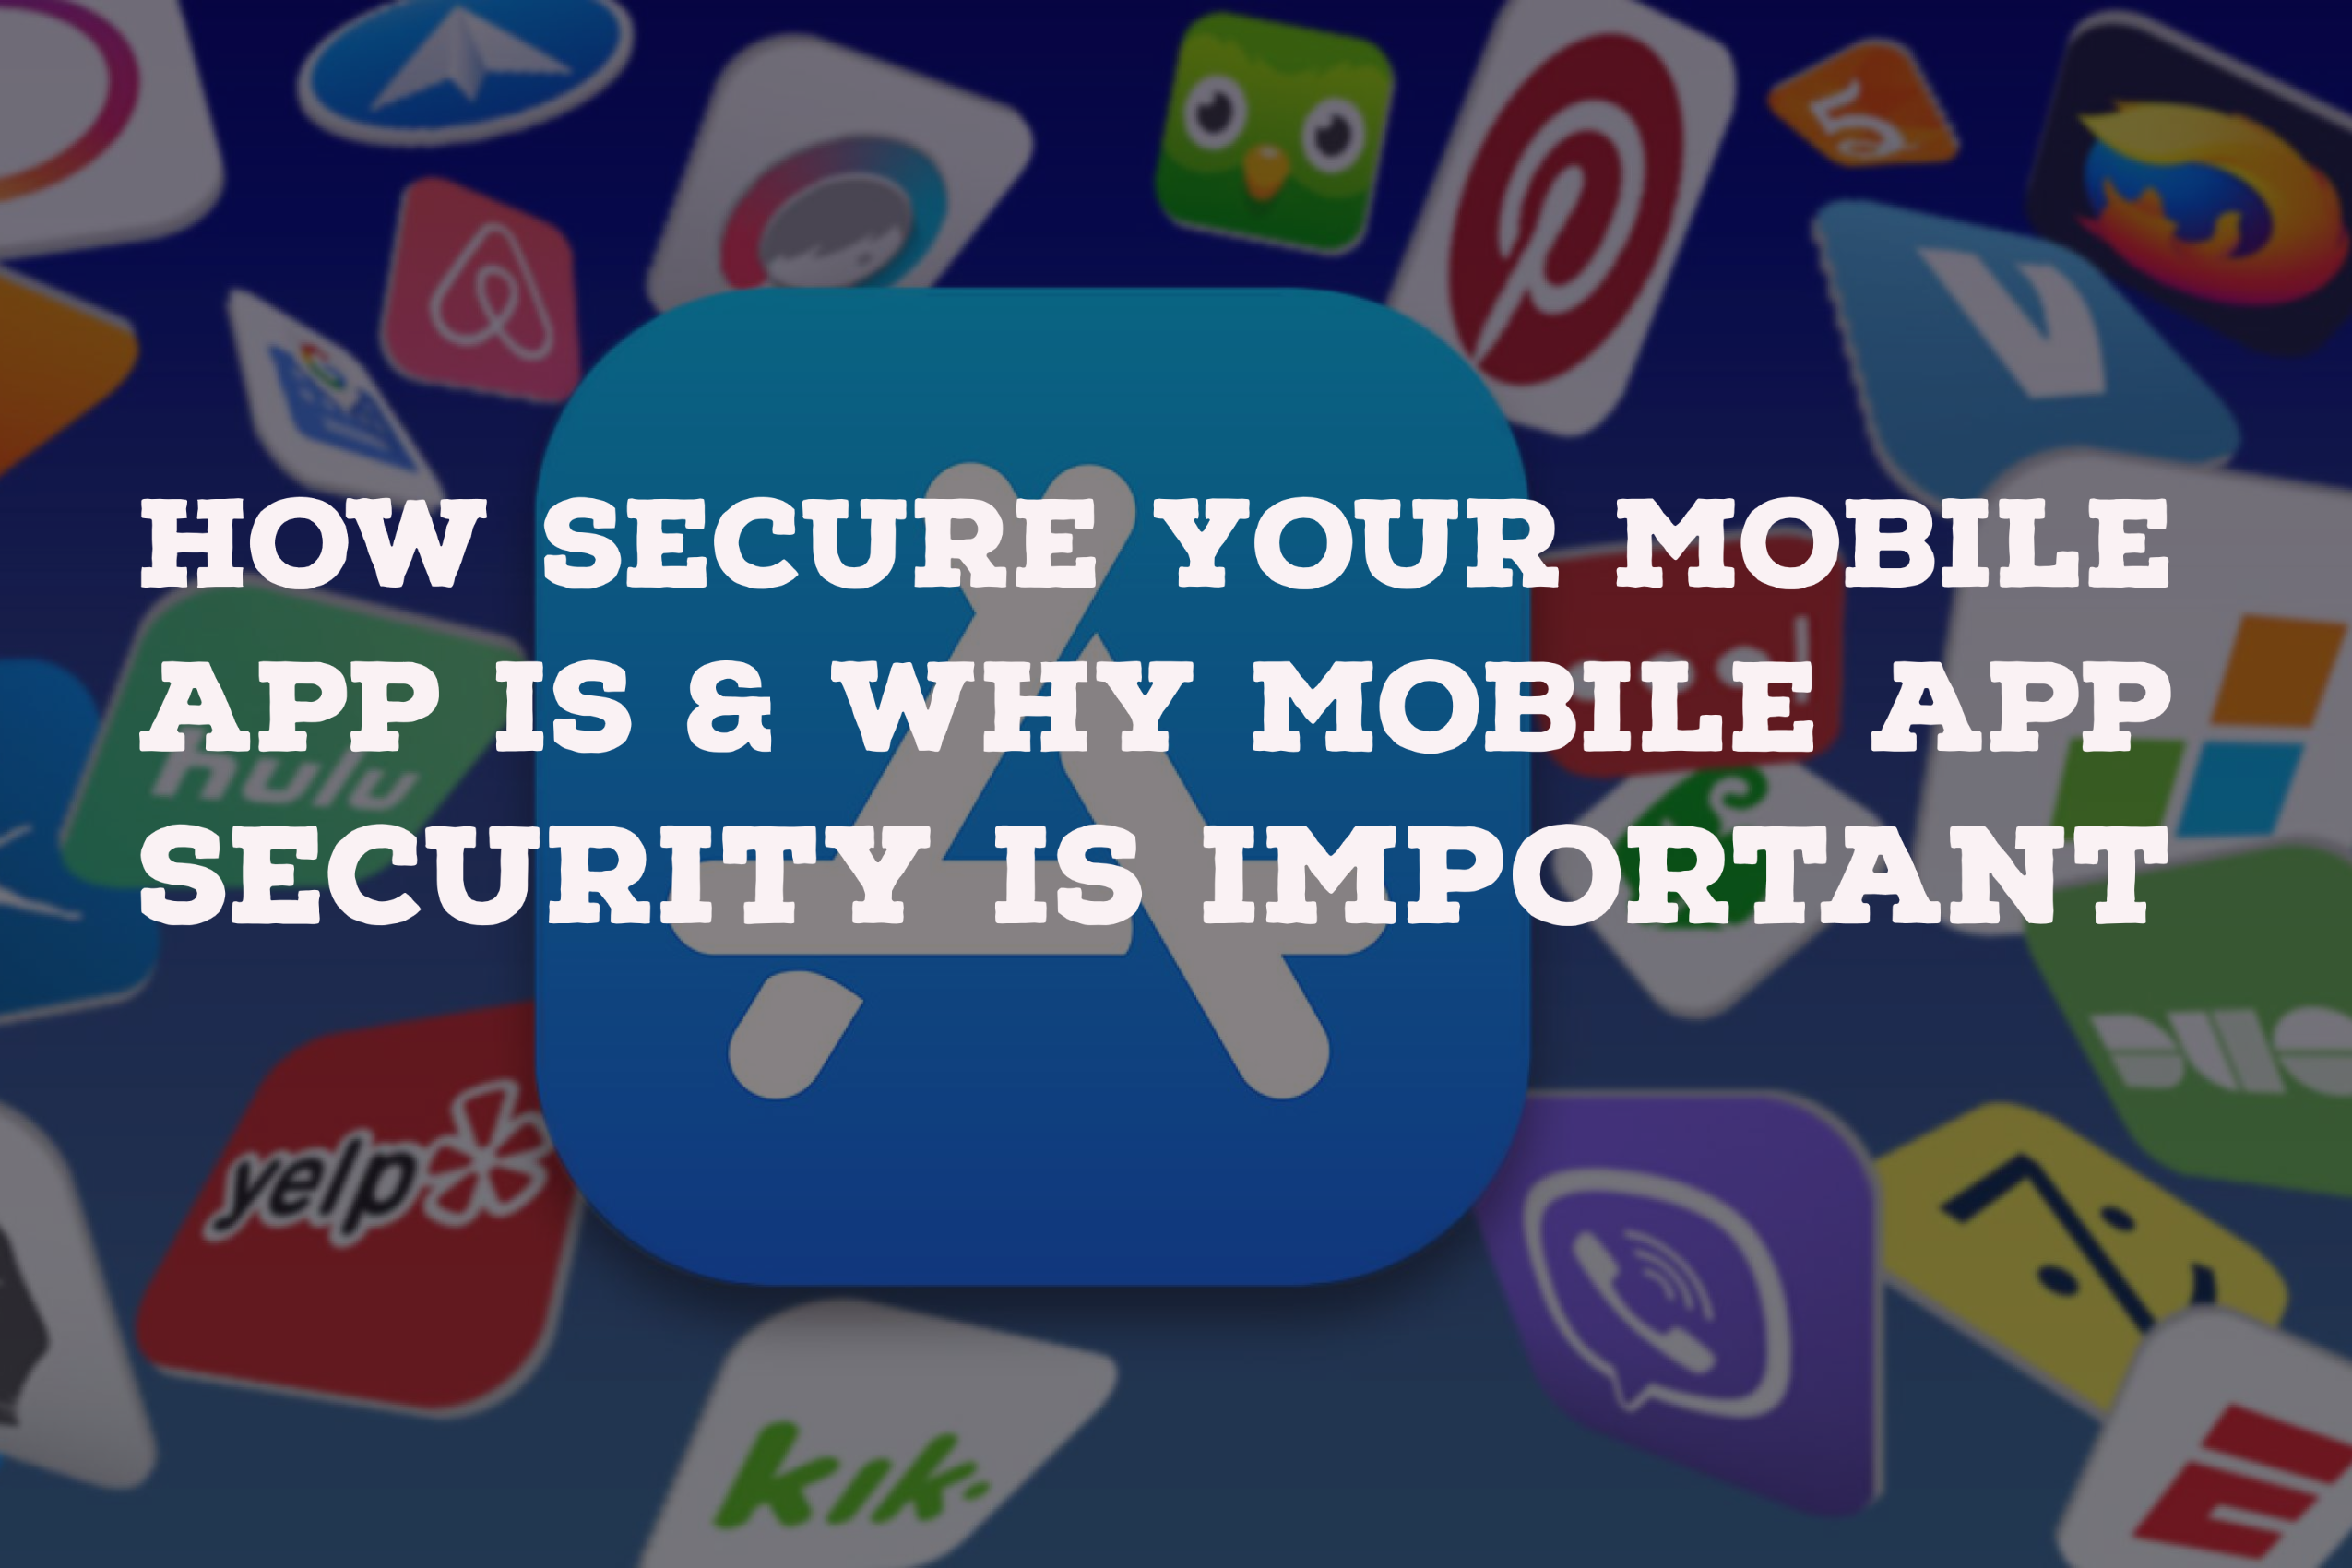 How Secure is your Mobile App & Why Mobile App Security Is Important